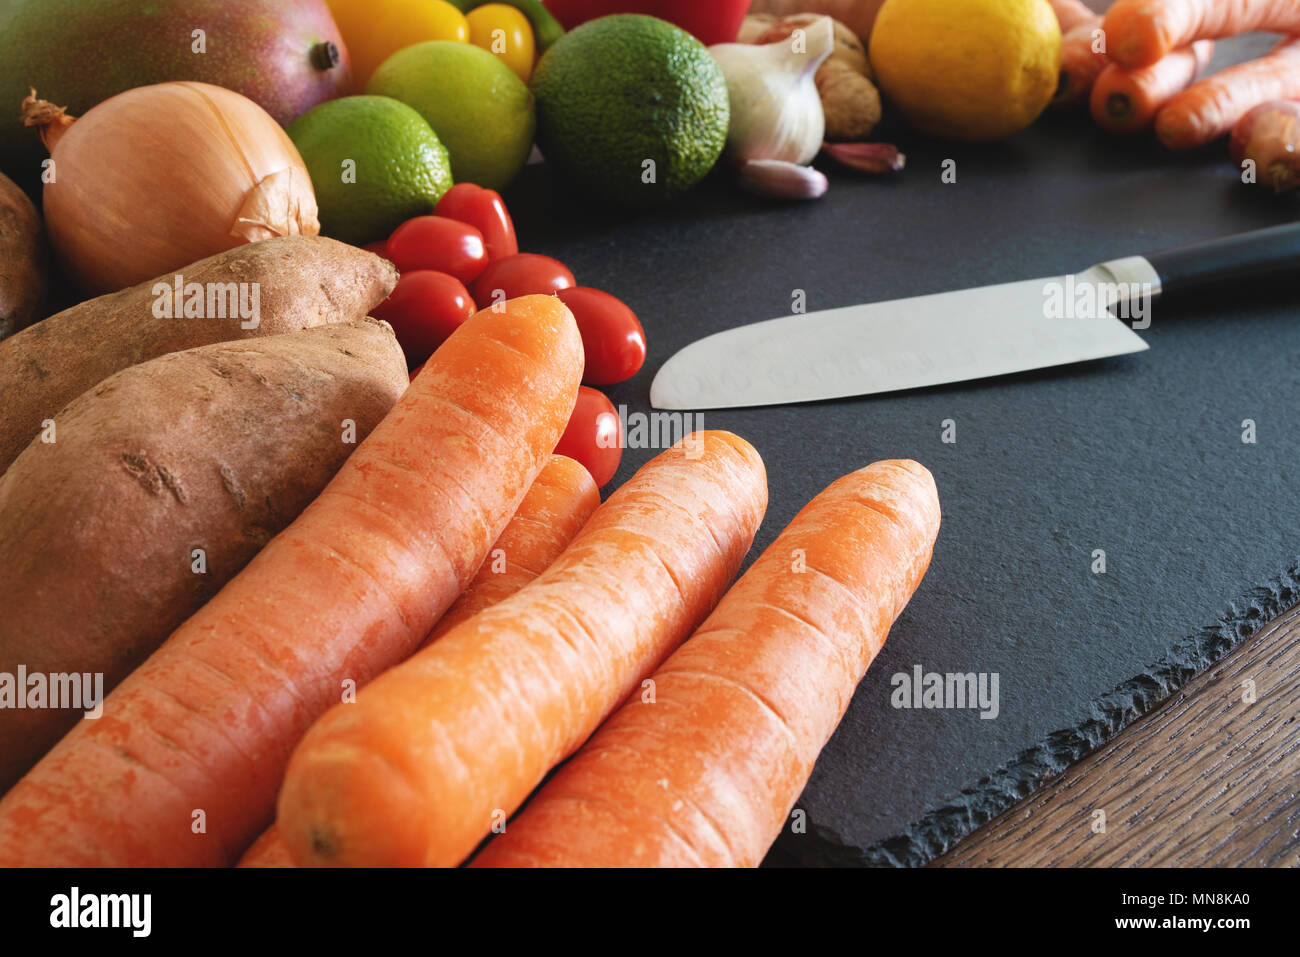 fresh organic fruits and vegetables on slate cutting board with kitchen knife - Stock Image